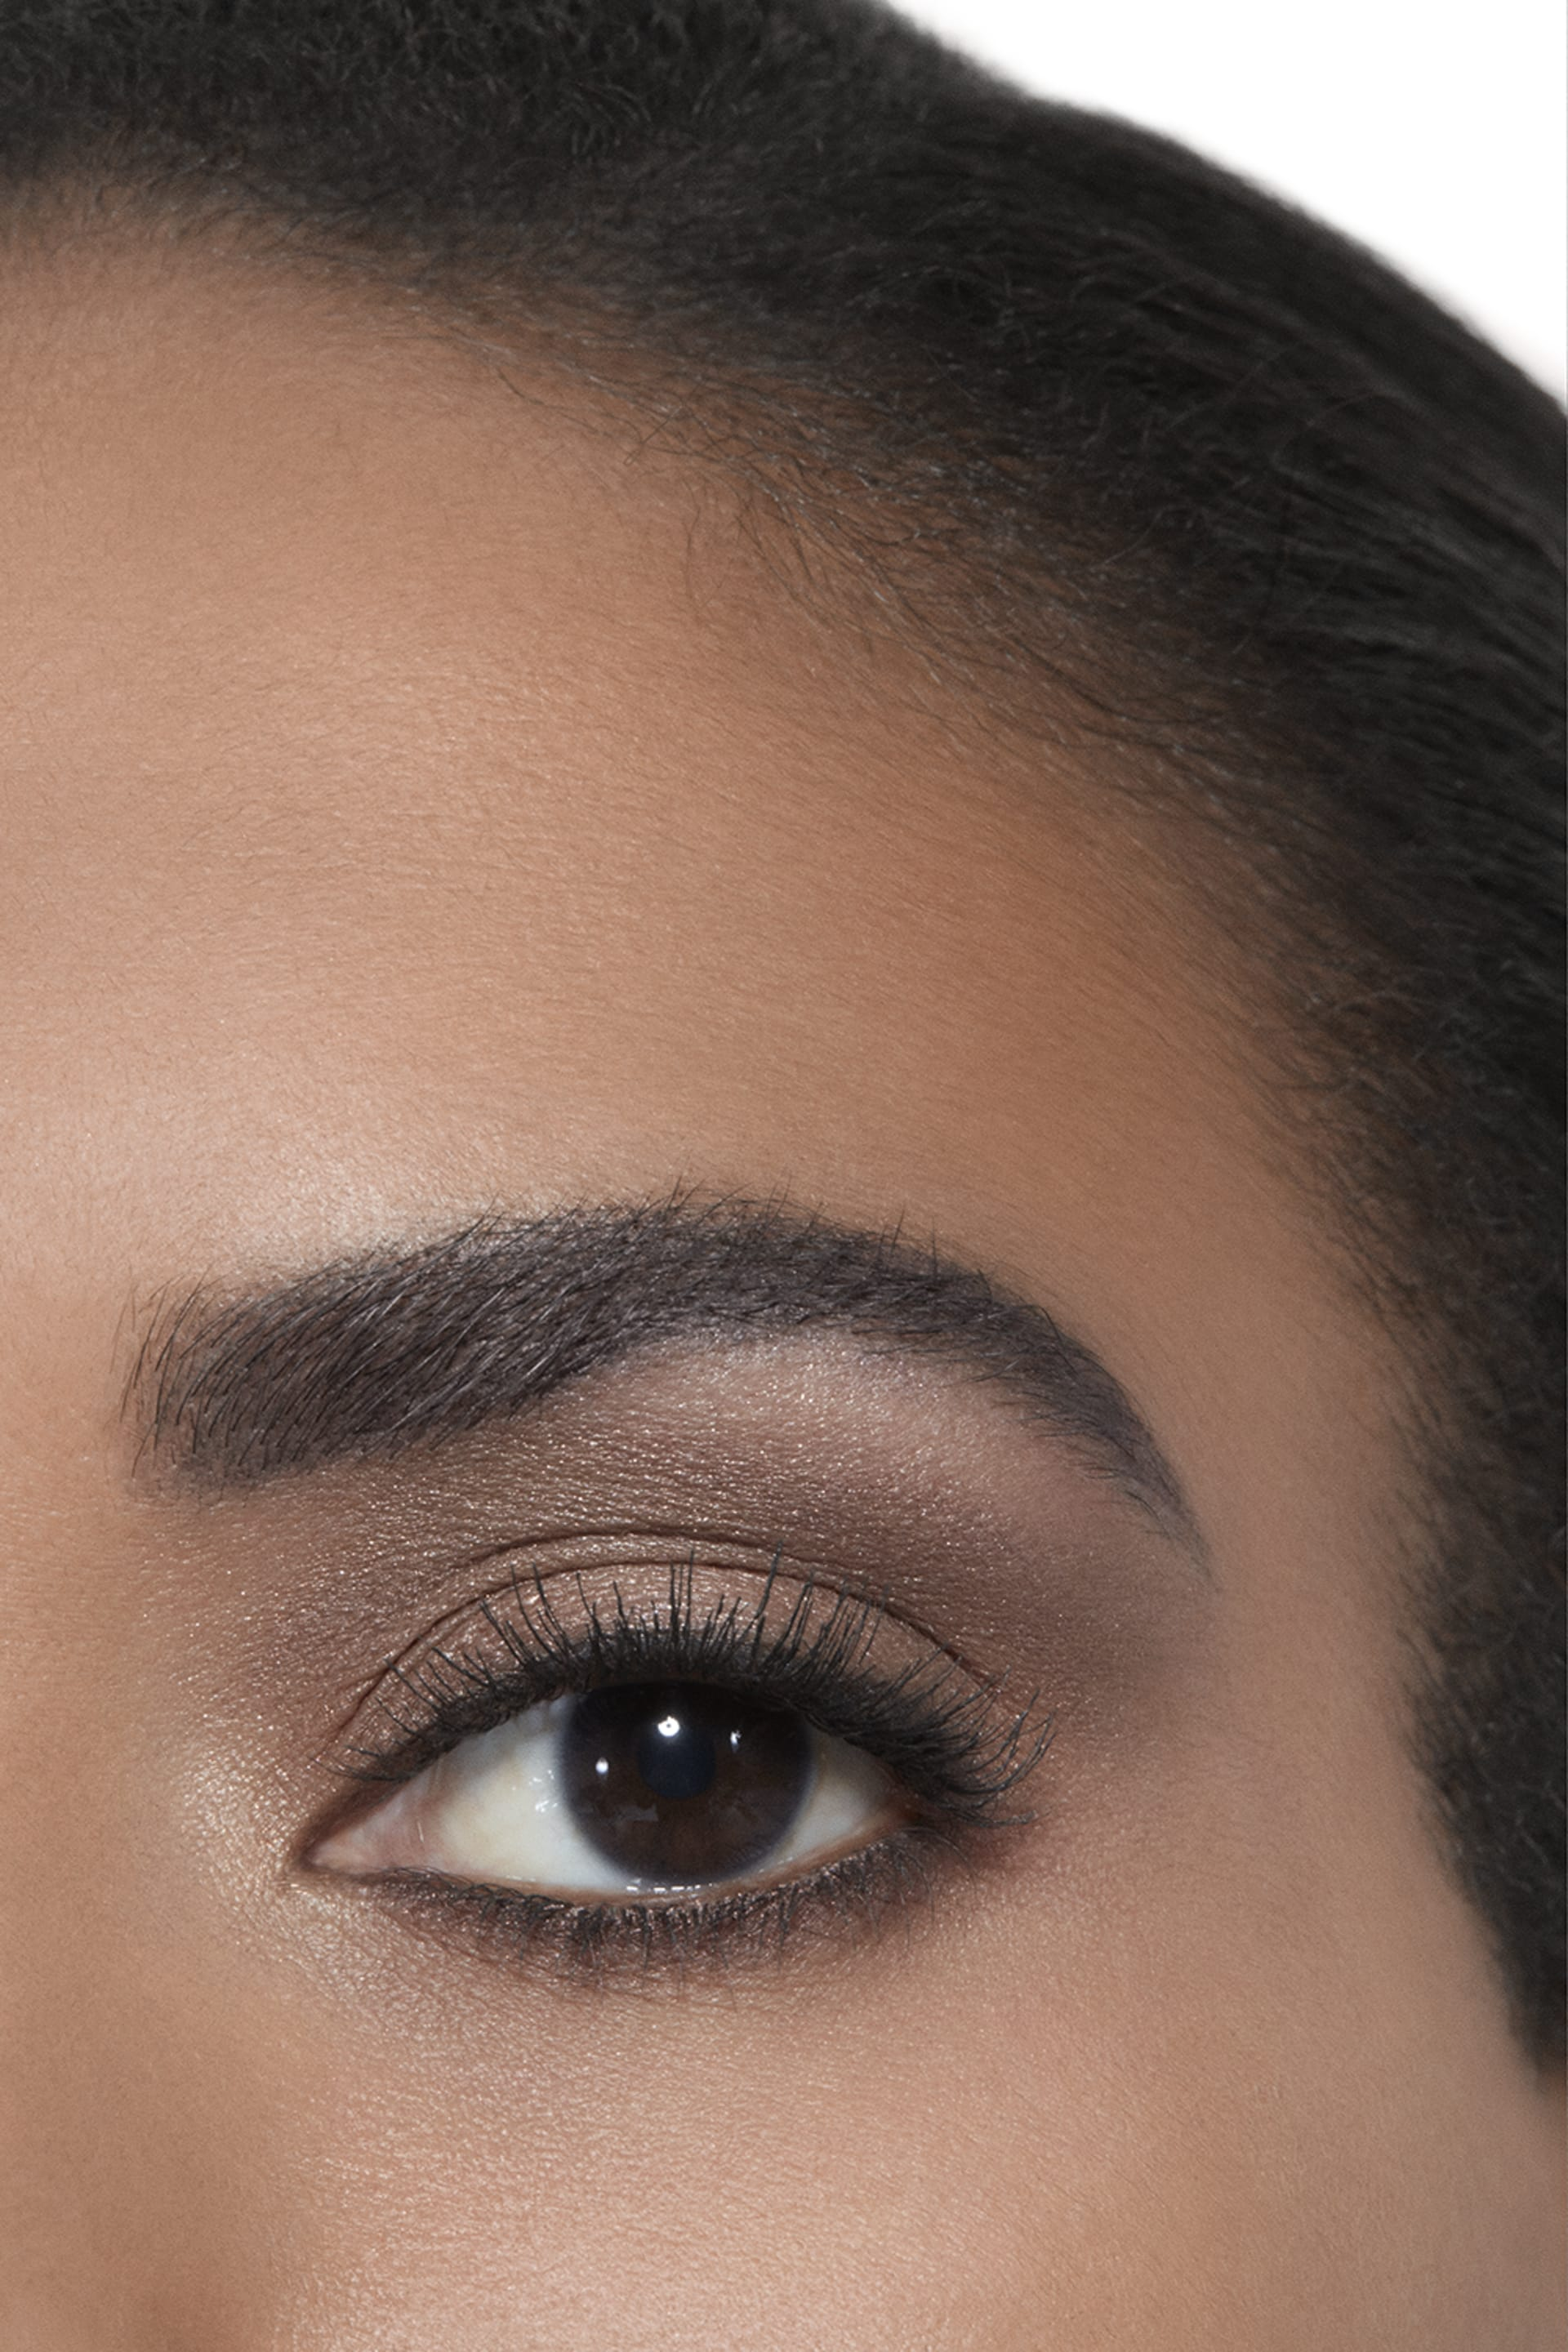 Application makeup visual 2 - LES 4 OMBRES 14 - MYSTIC EYES